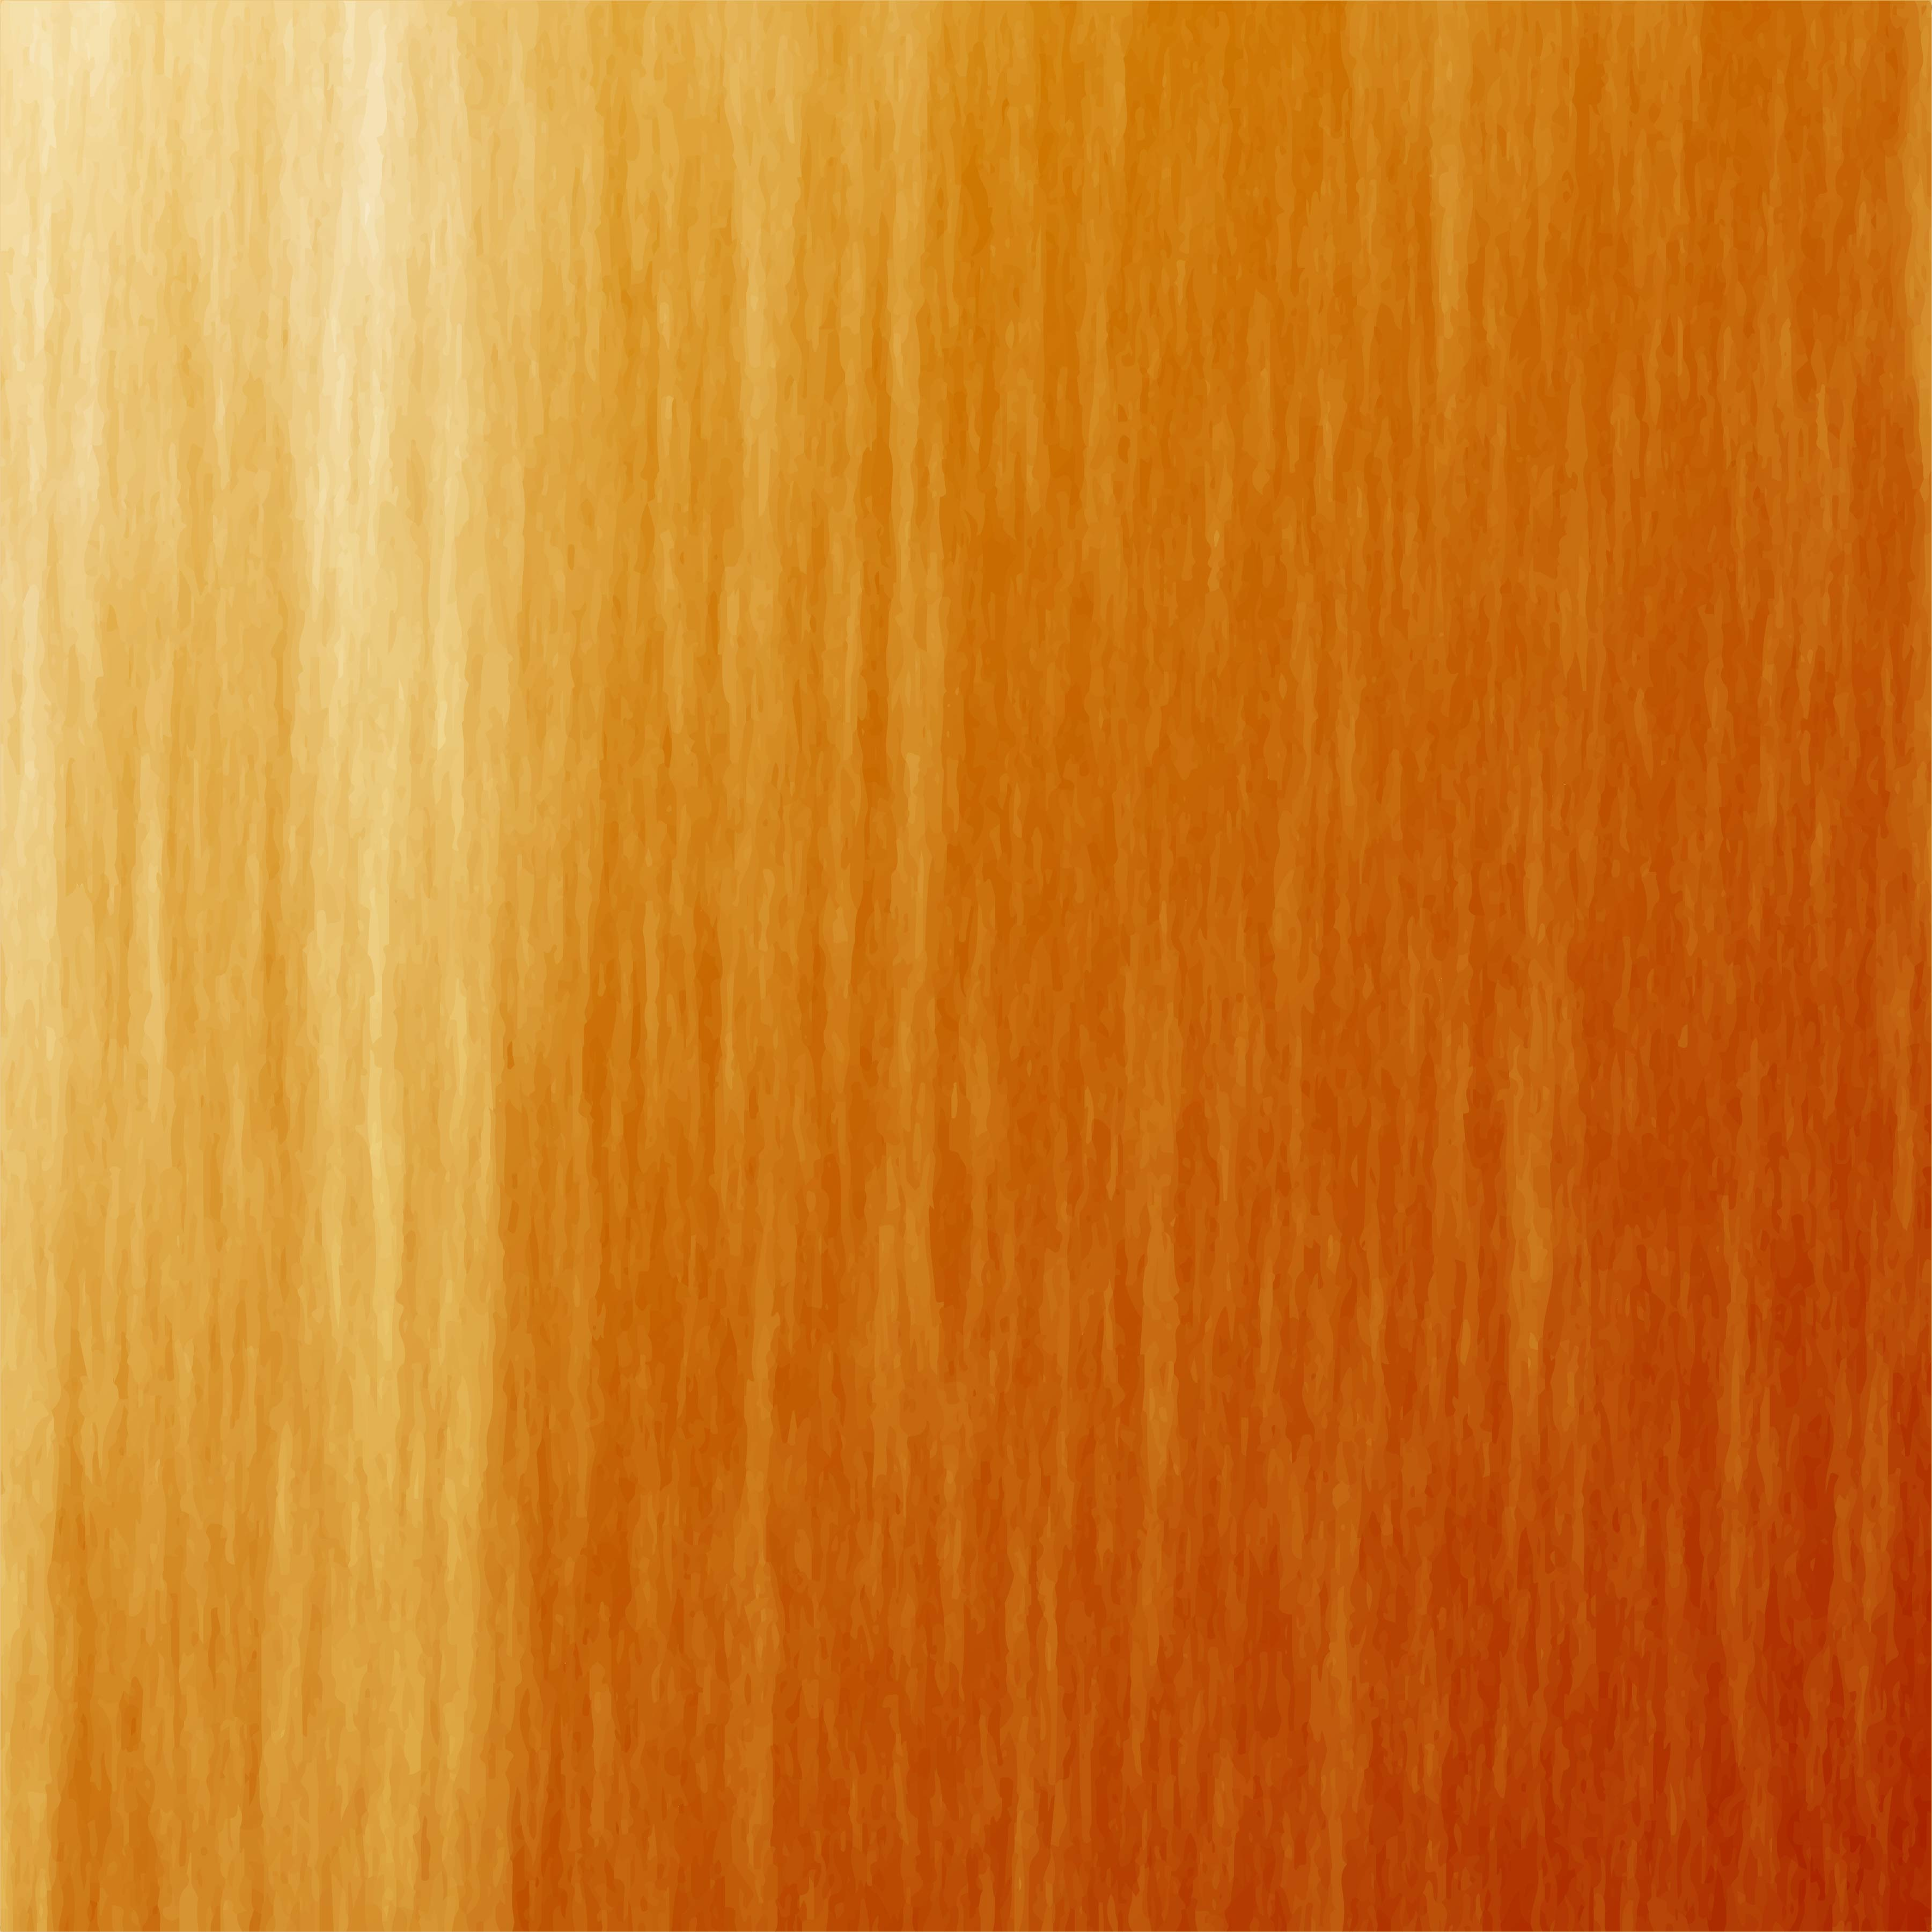 Abstract Wood Texture Background 238482